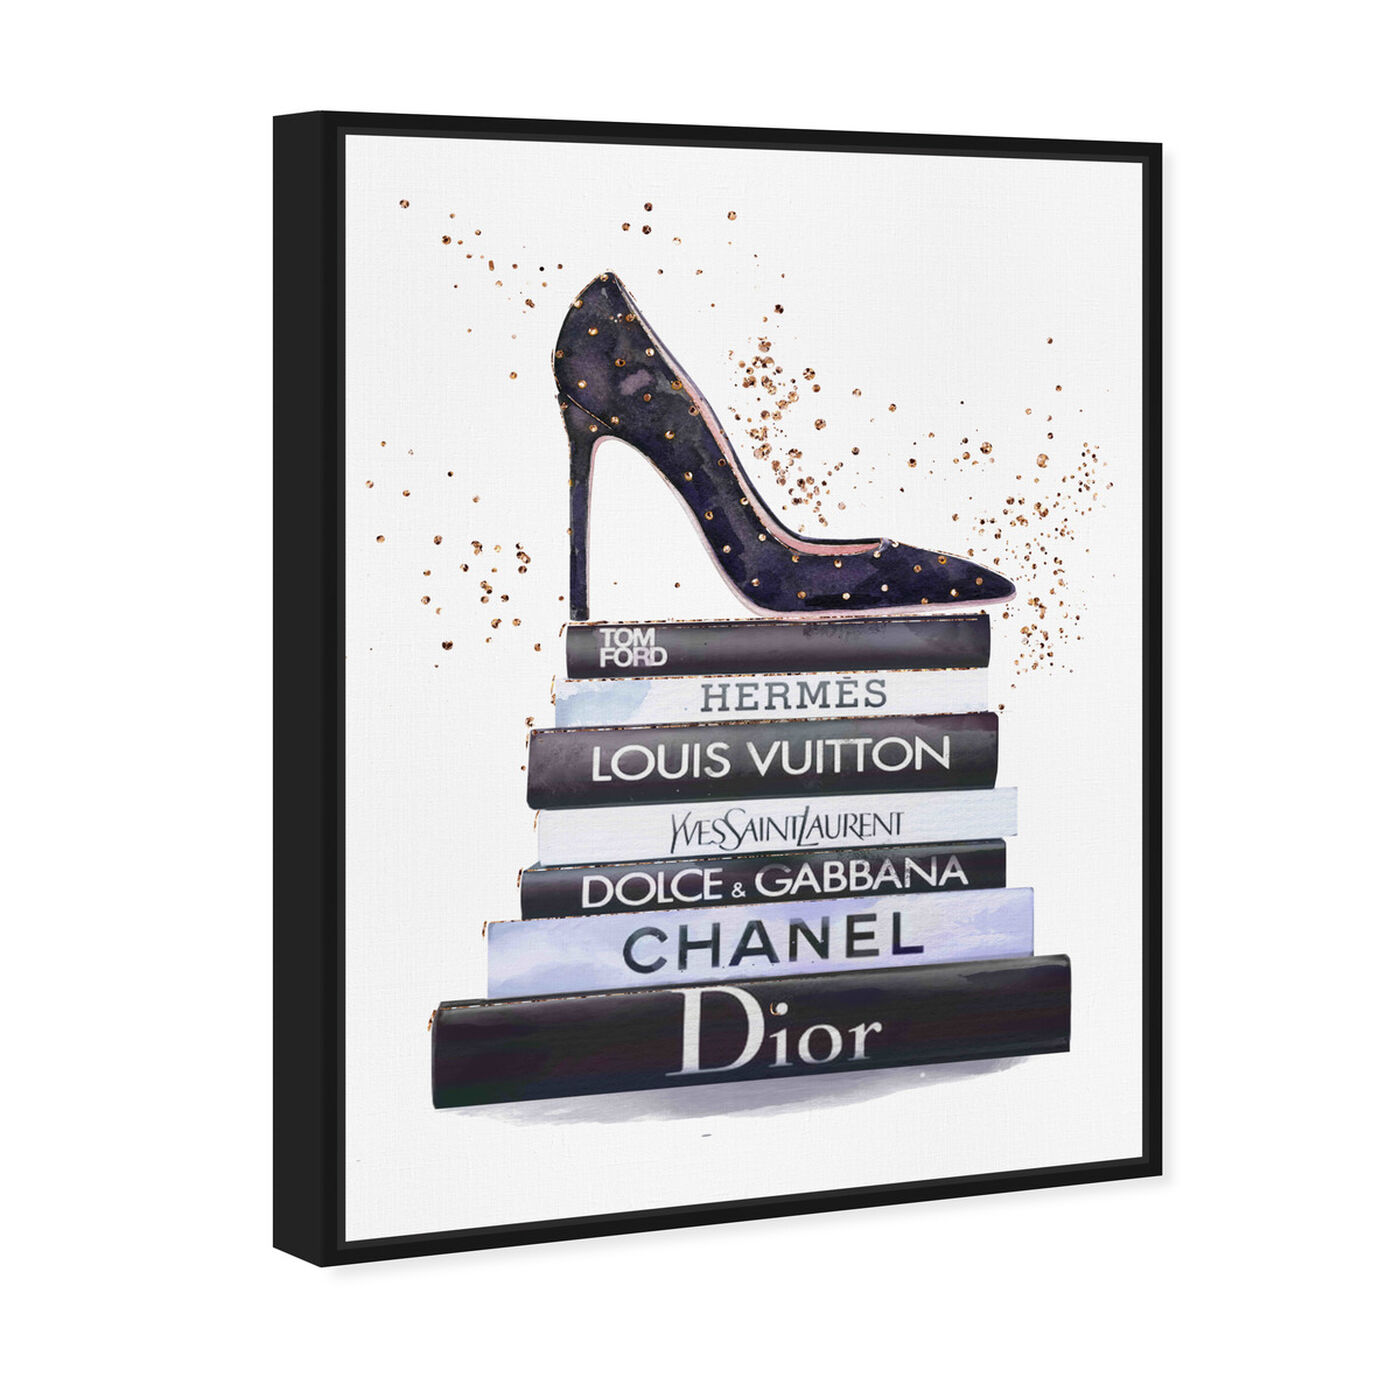 Angled view of Glam Shoe at daytime featuring fashion and glam and shoes art.